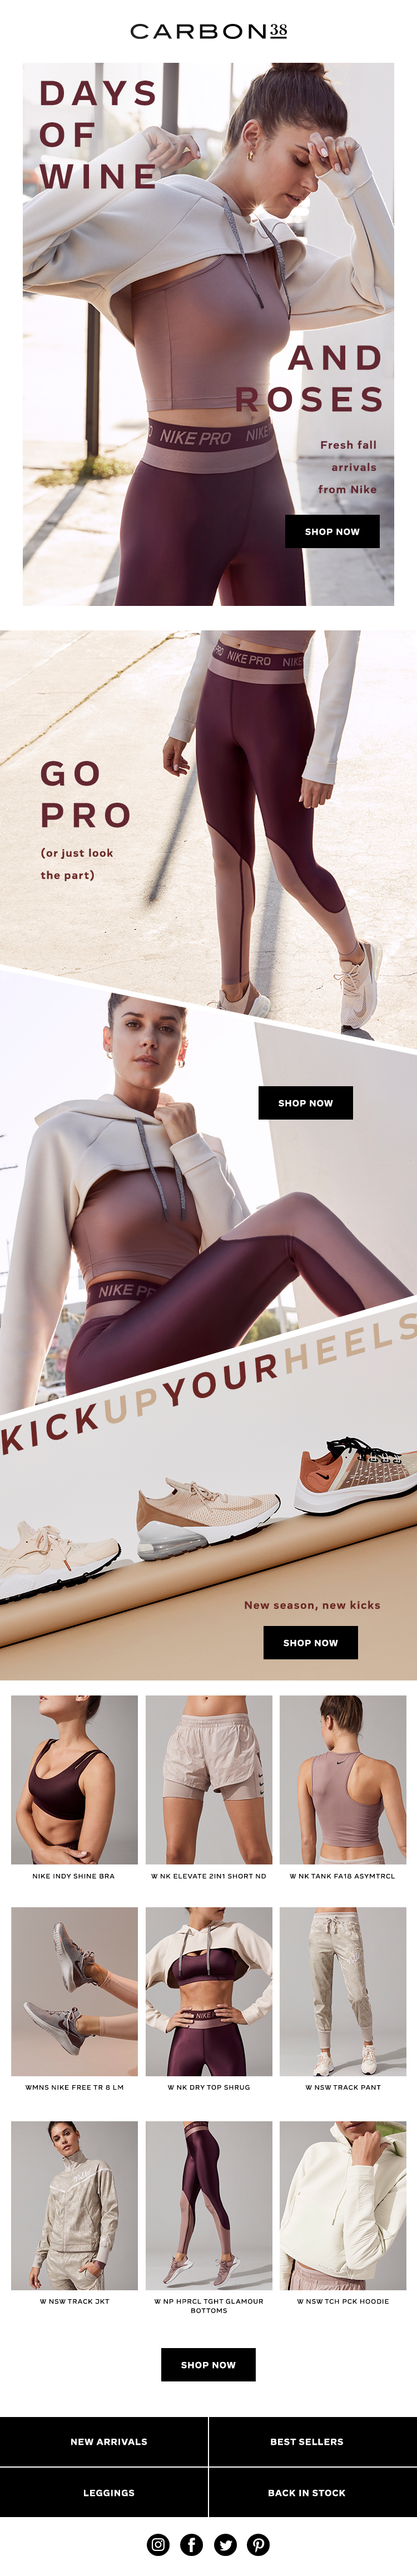 Email copy 3_090818_Nike.png